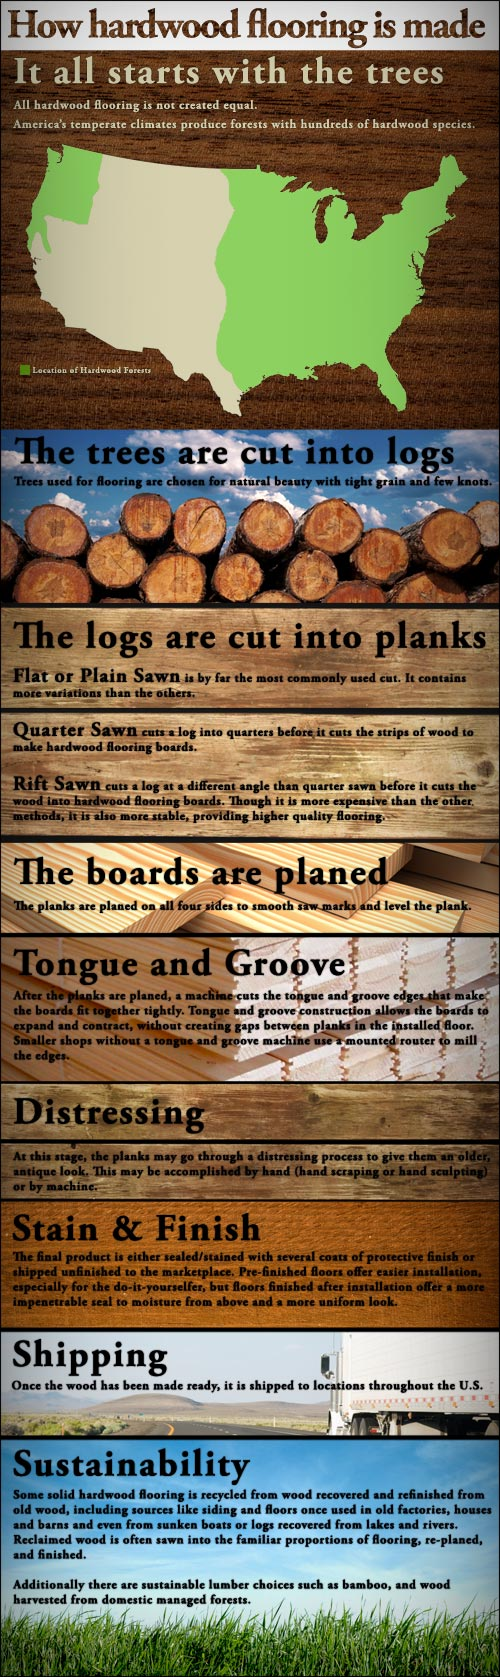 hardwood sm How Hardwood Flooring is Made – Infographic